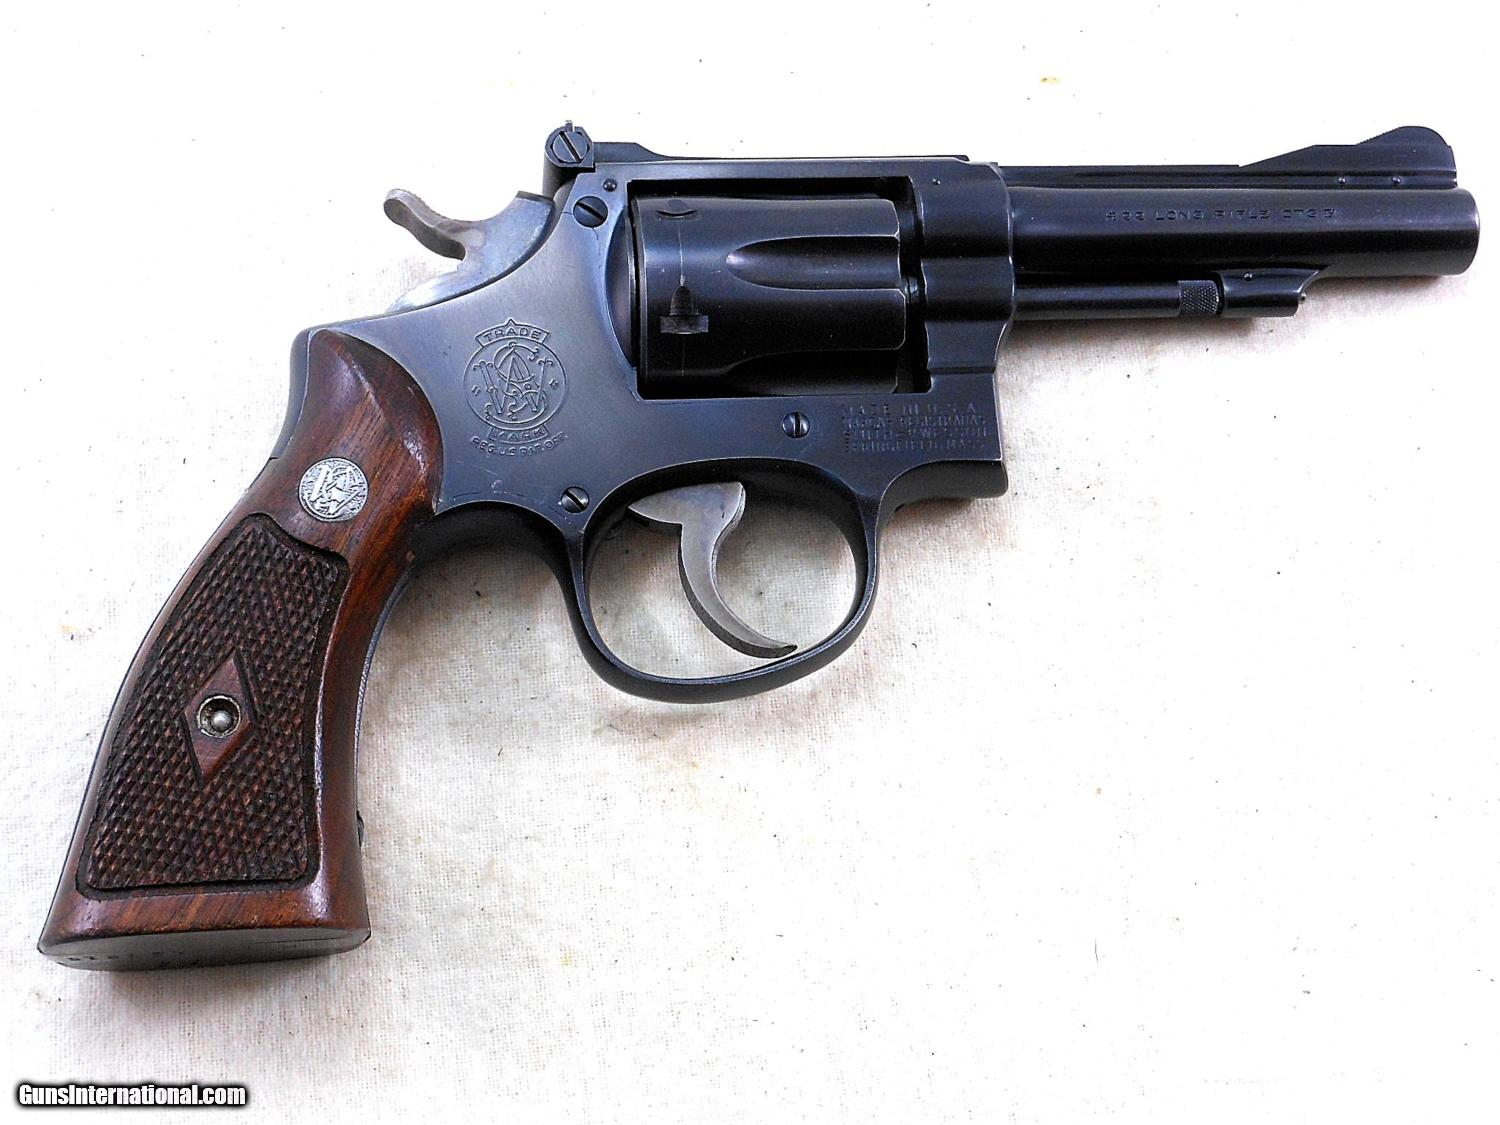 Hookup a smith and wesson revolver by serial number